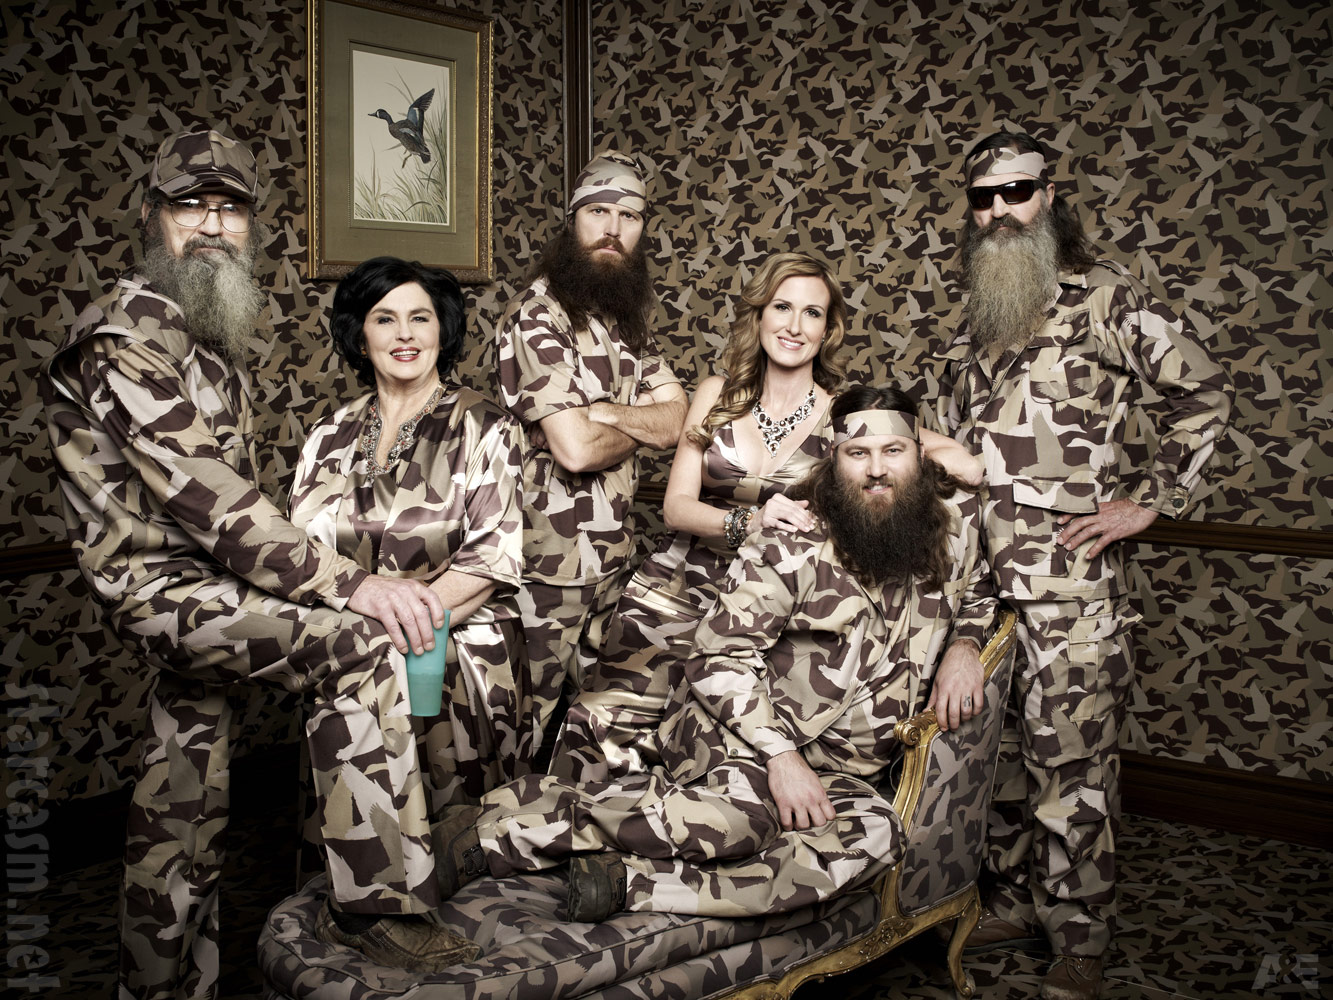 Duck Dynasty The Robertsons family portrait